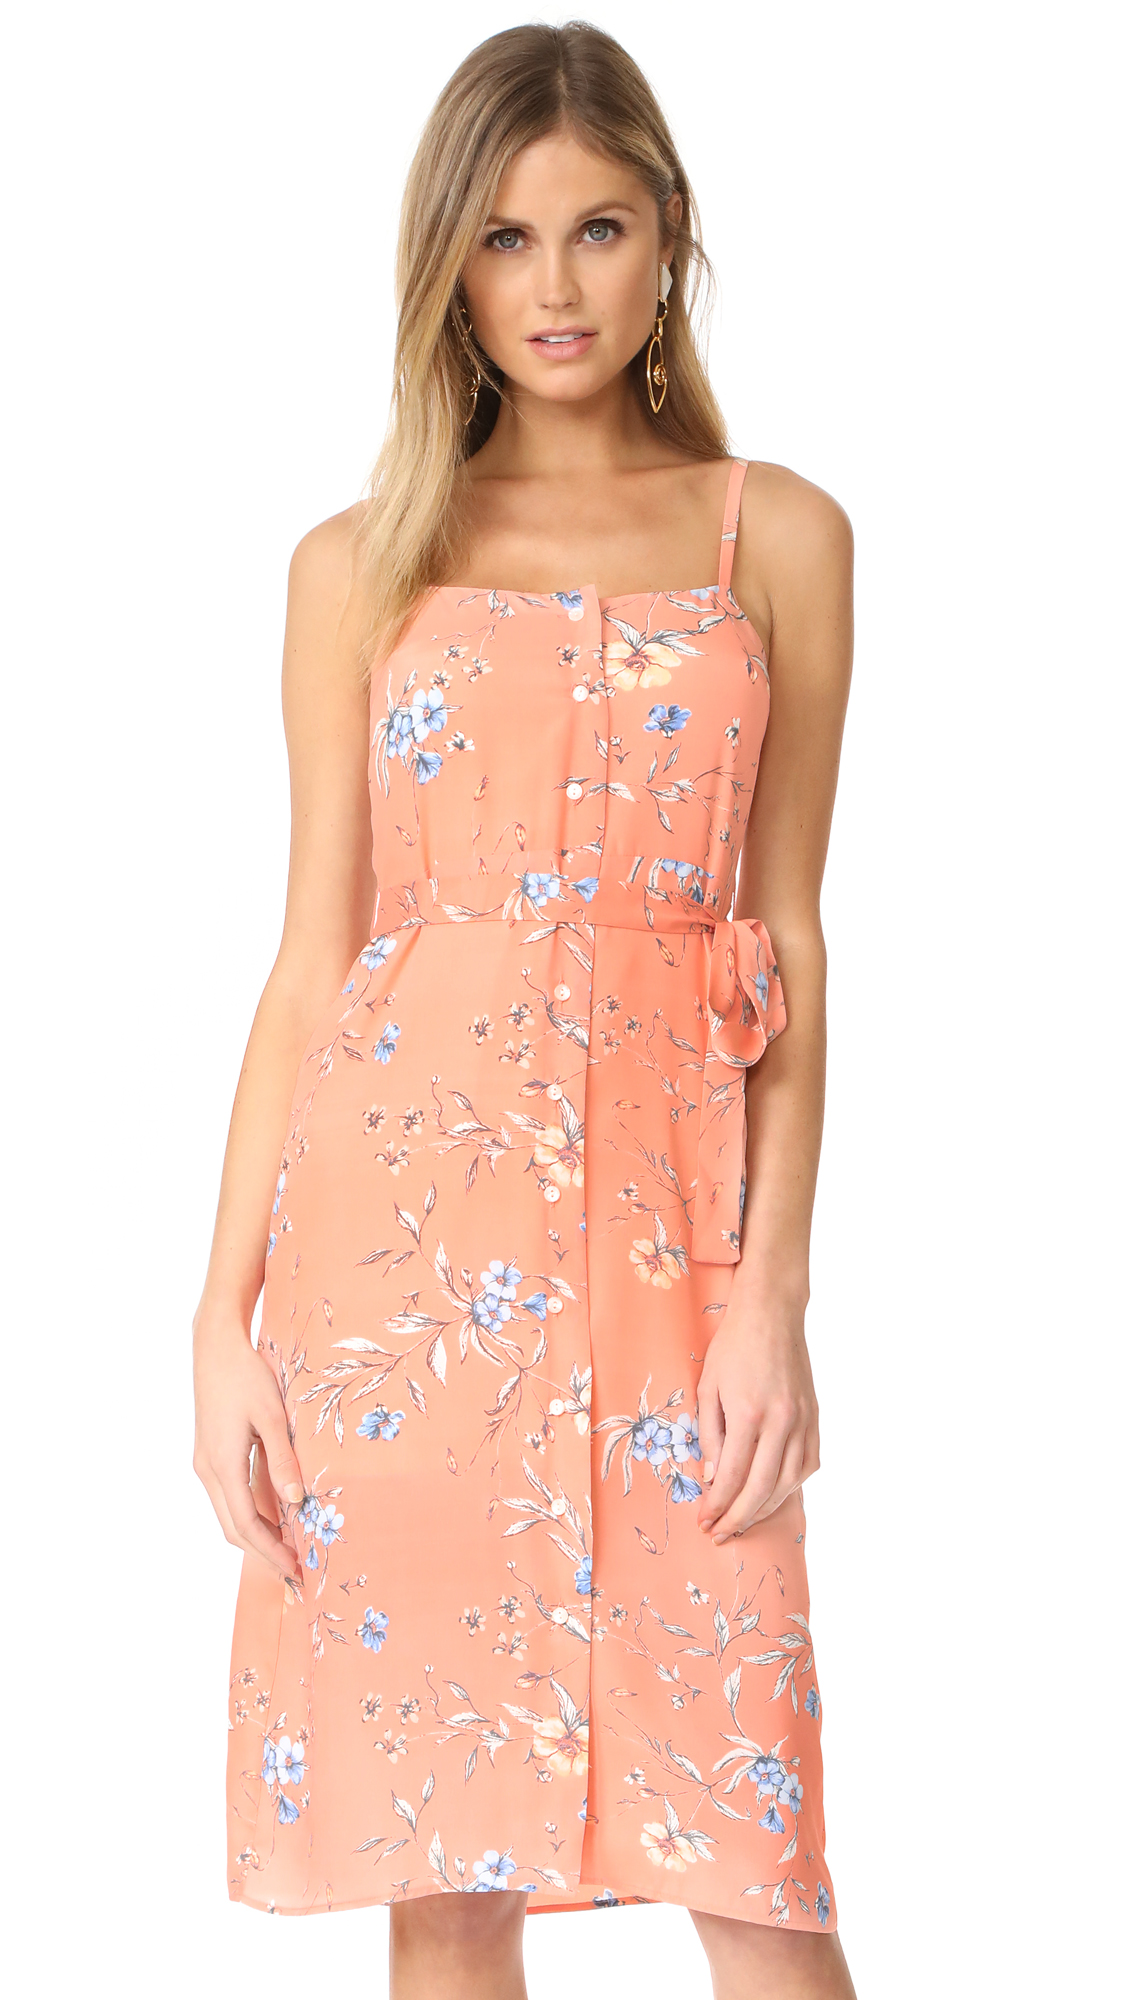 Ali & Jay Flower Frolicking Dress